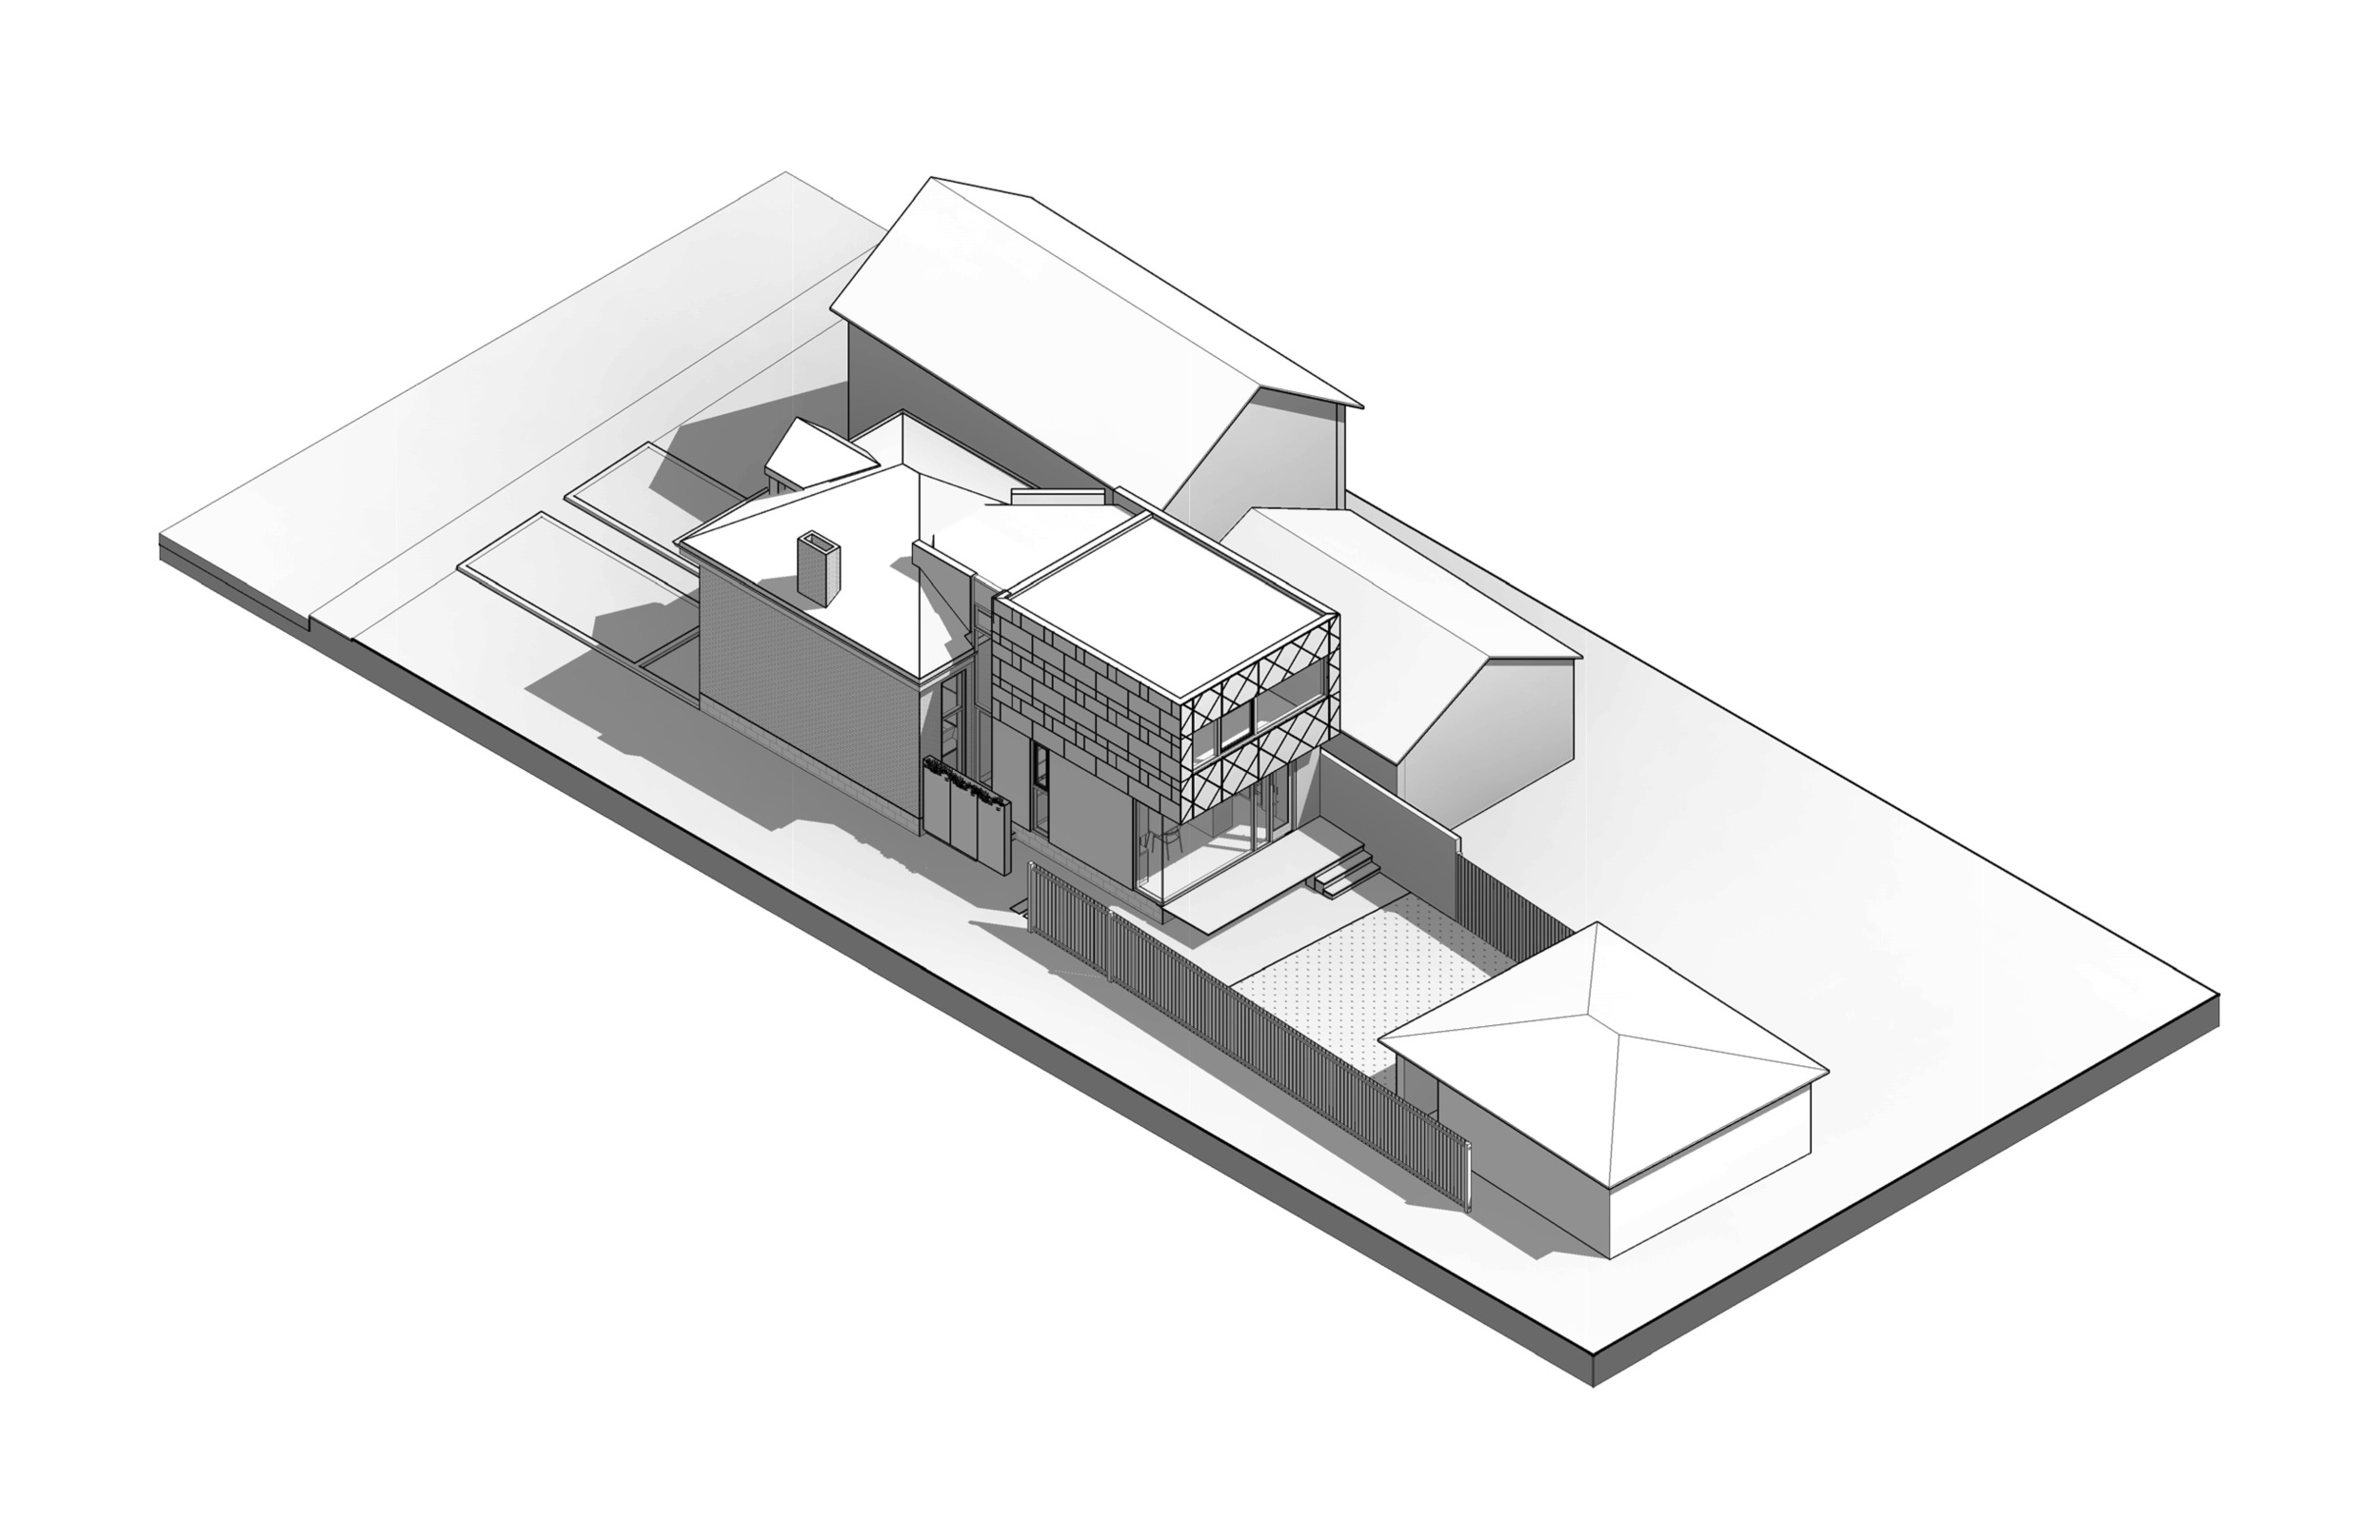 Axo - Overall Site Plan View 1 (2).jpg